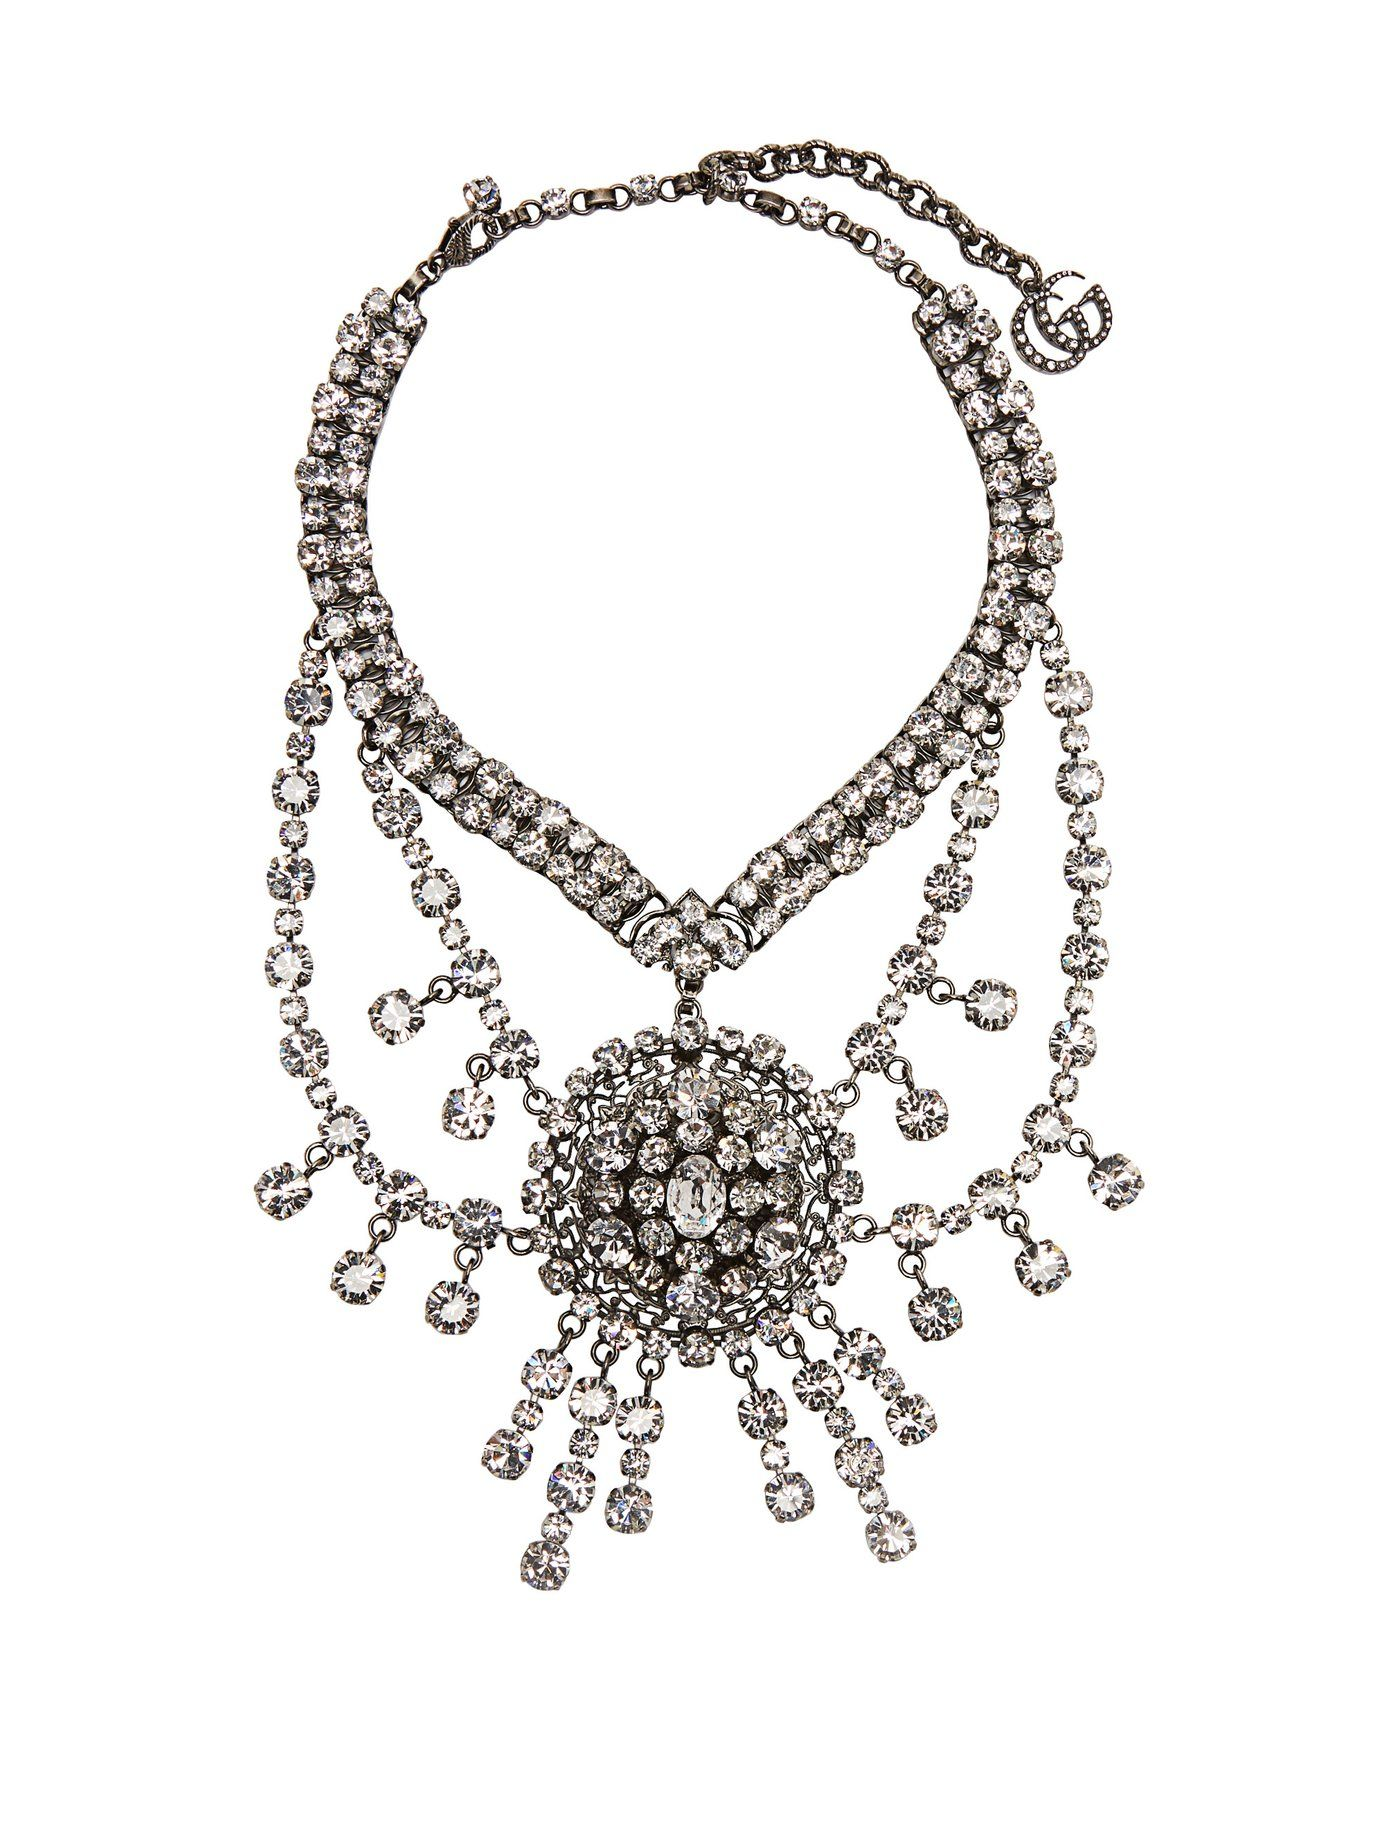 8caada7c0 Crystal-embellished statement necklace | Gucci Crystal Necklace, Women Wear